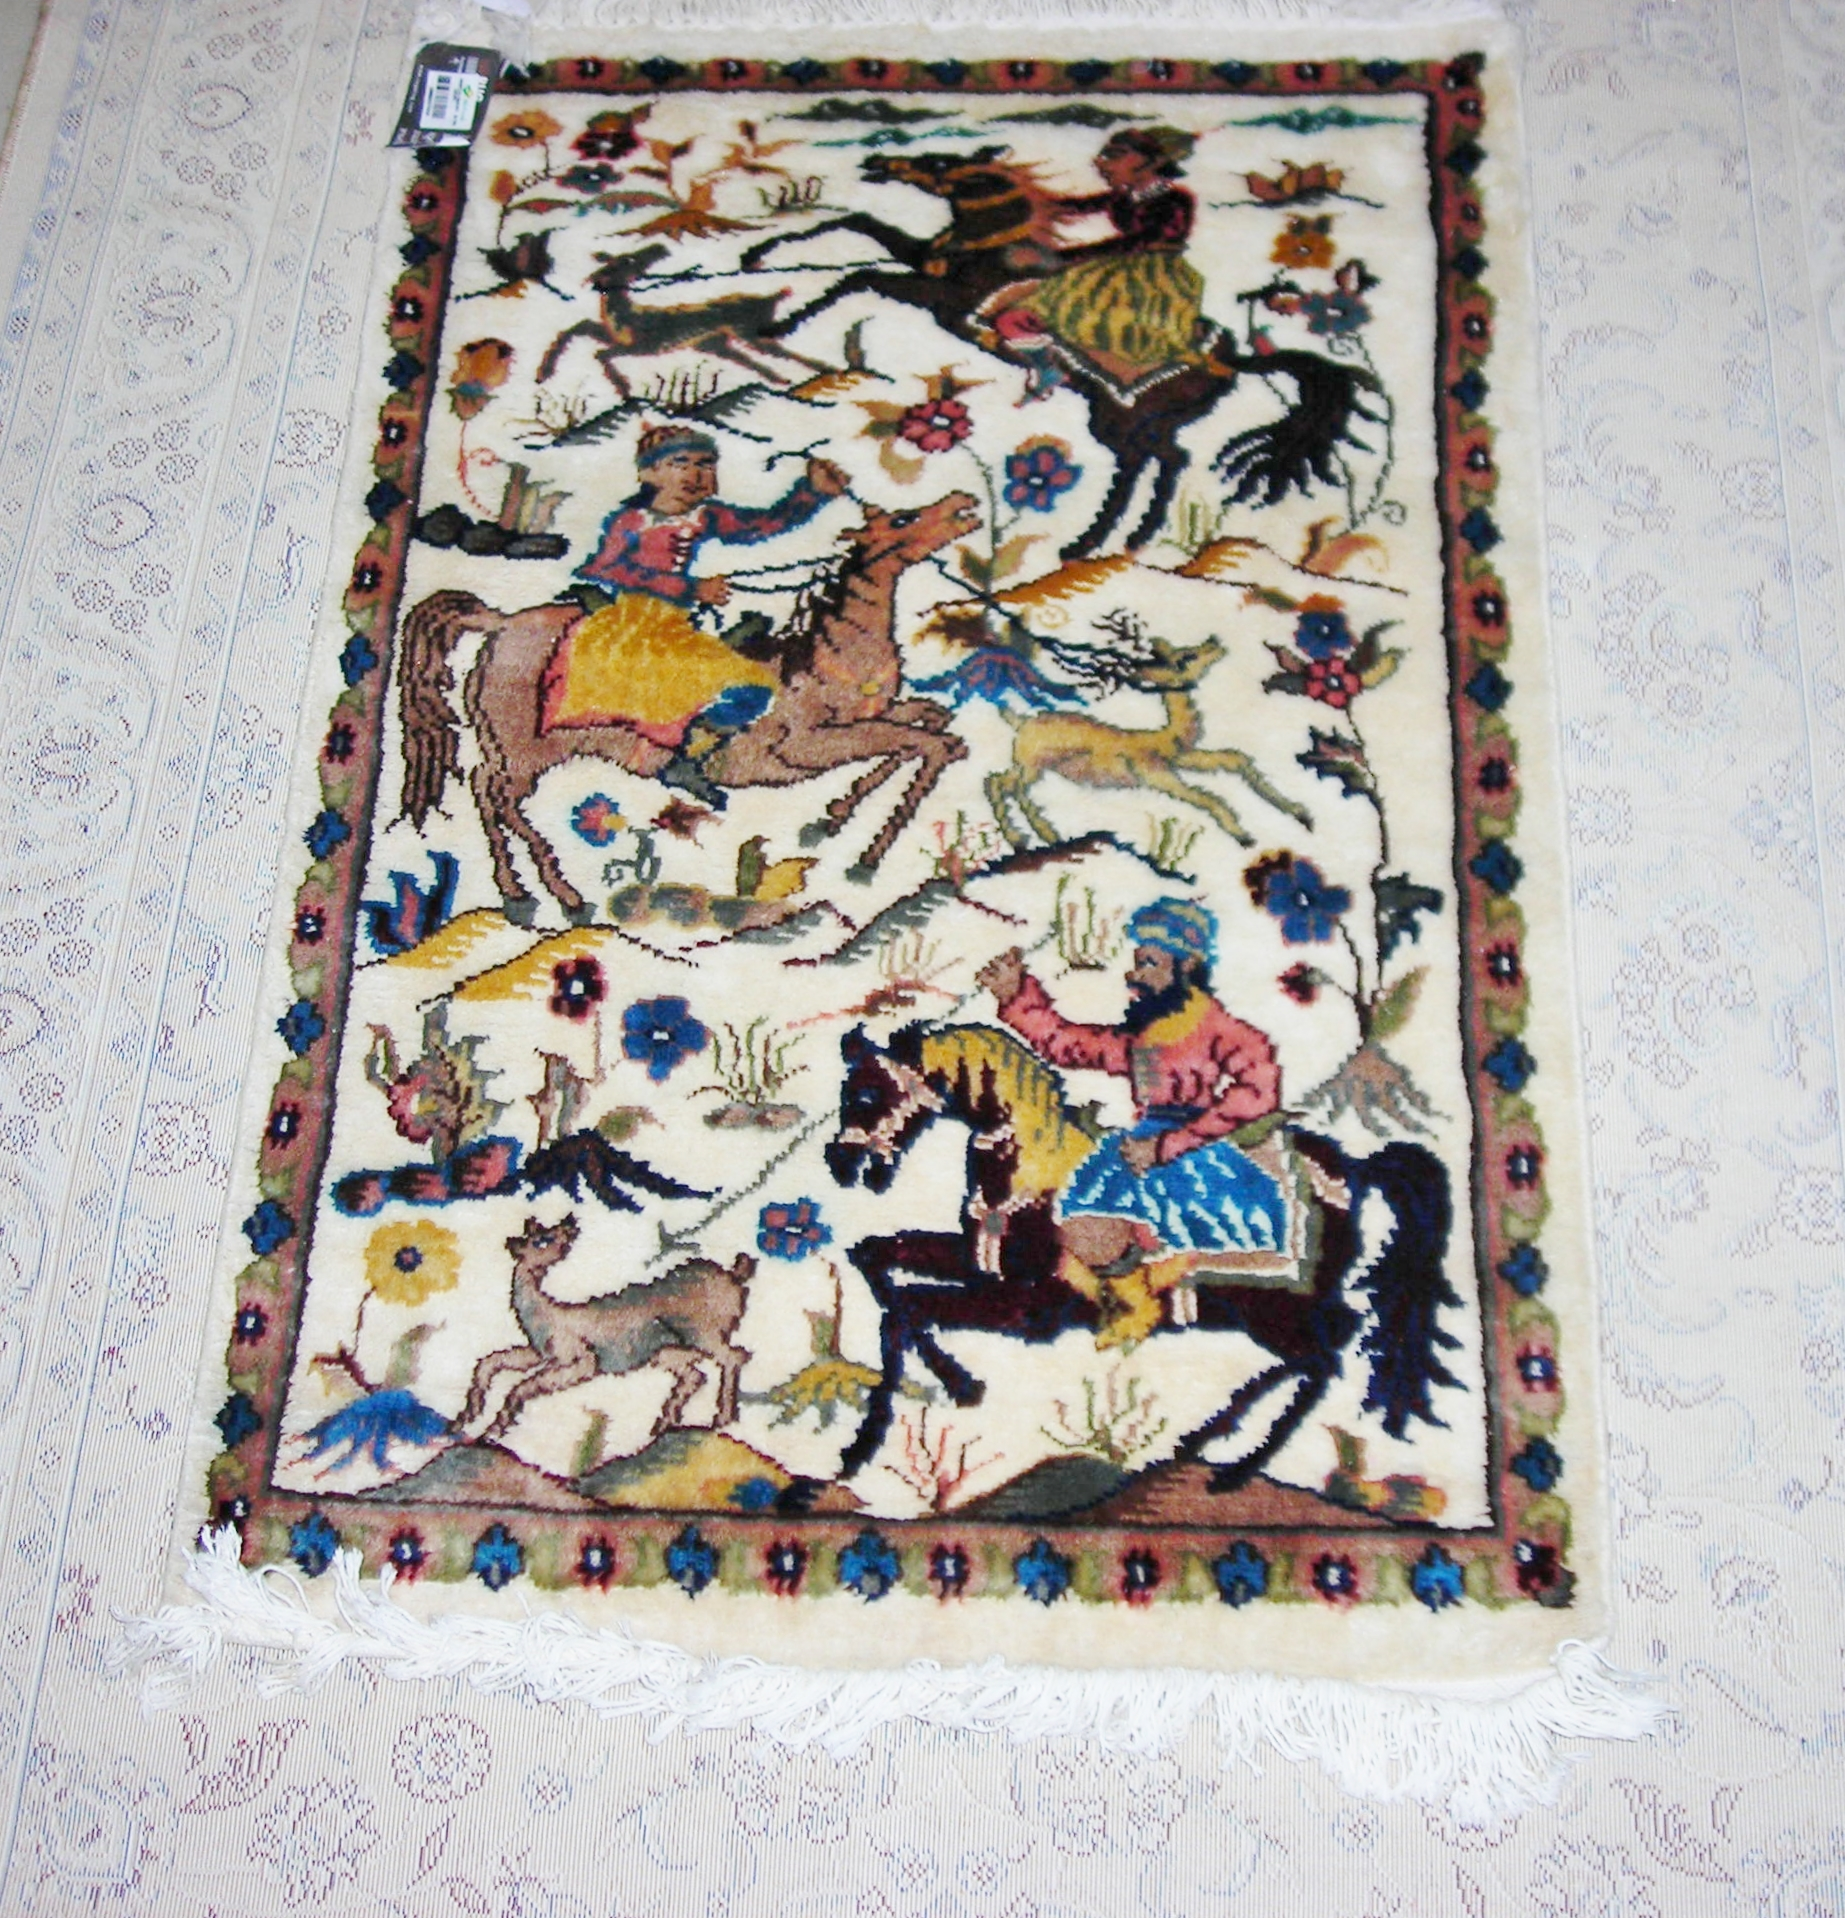 Moghal Hunting silk pictorial 2x3 ft persian rug no. 6734